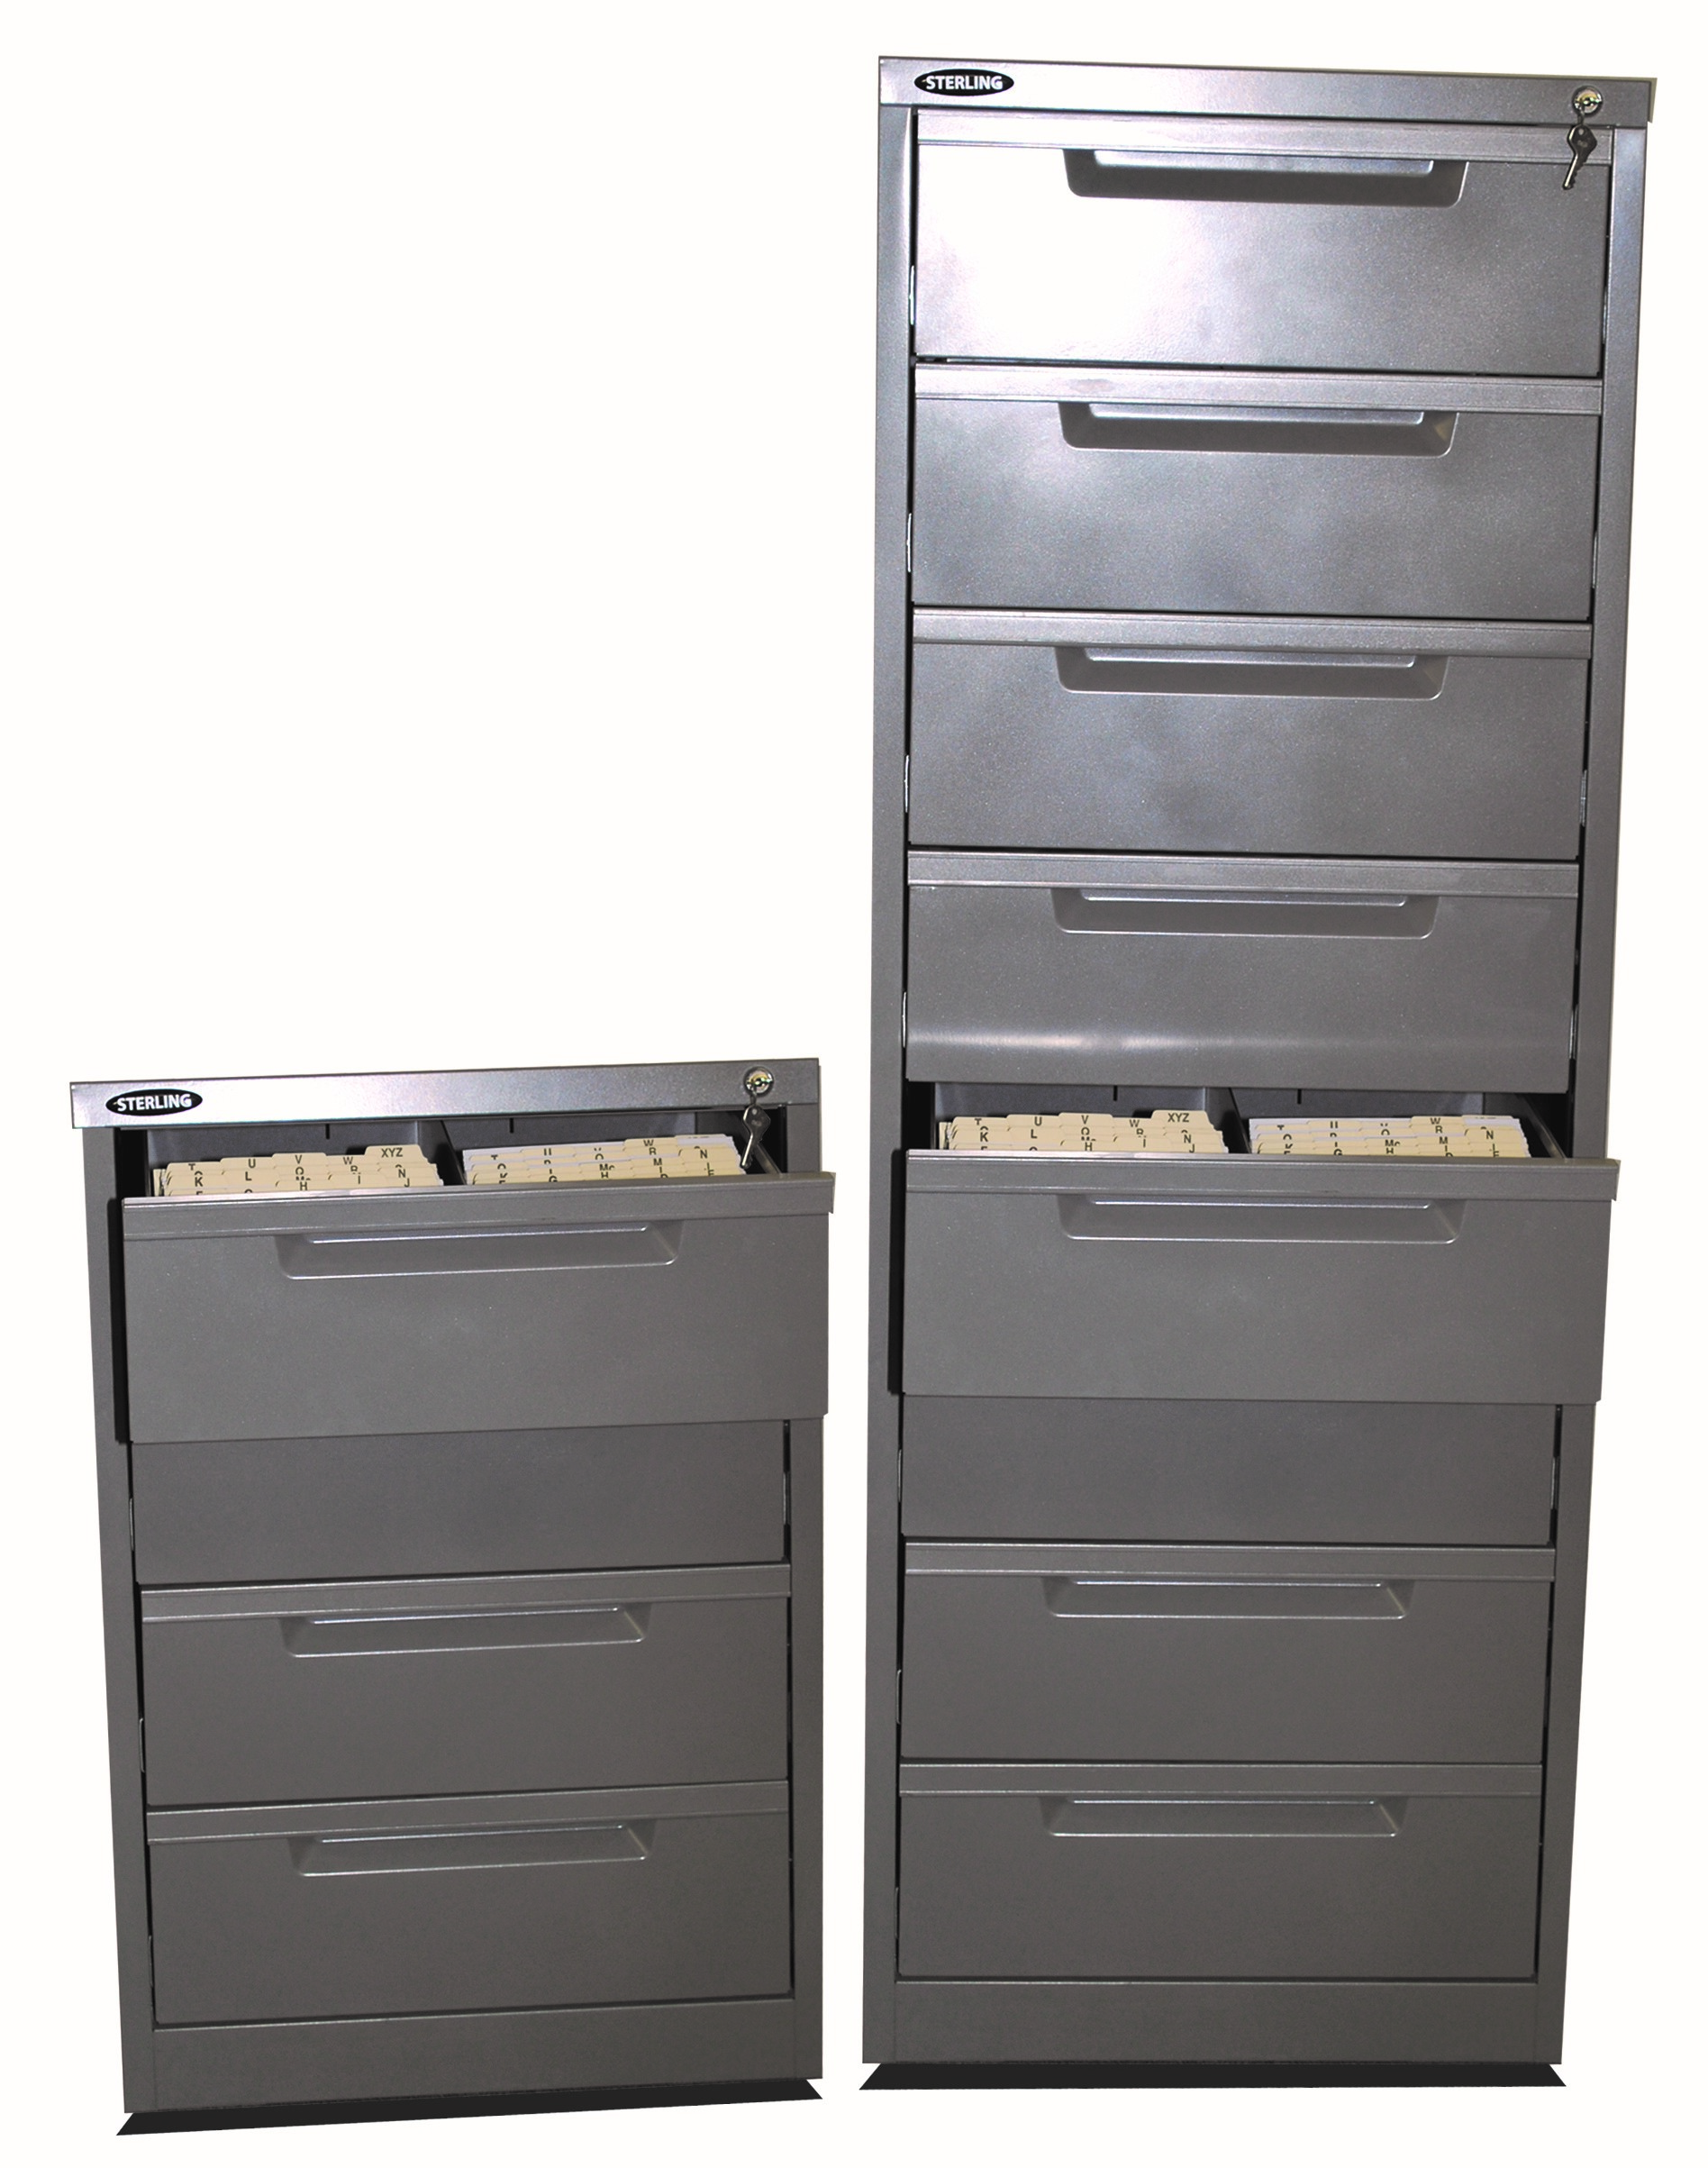 sizes one popular horizontal file maximizes with our all philadelphia come filing space of units ethosource in is more cabinets lateral shapes while office its the and drawers